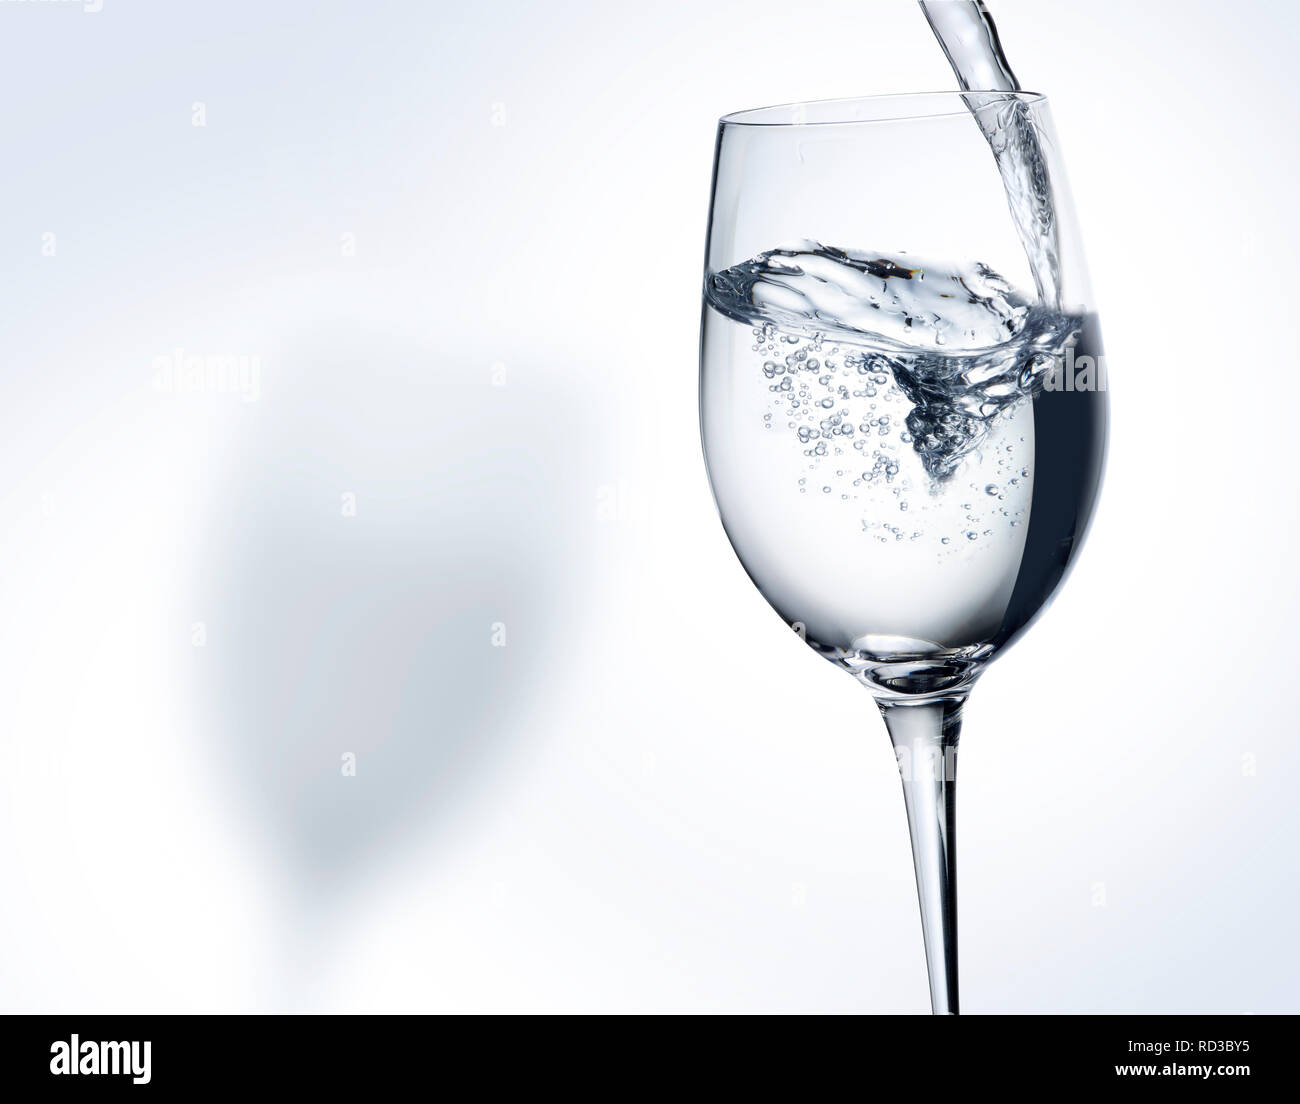 Monochrome image of water pouring into a wine glass, space for copy - Stock Image